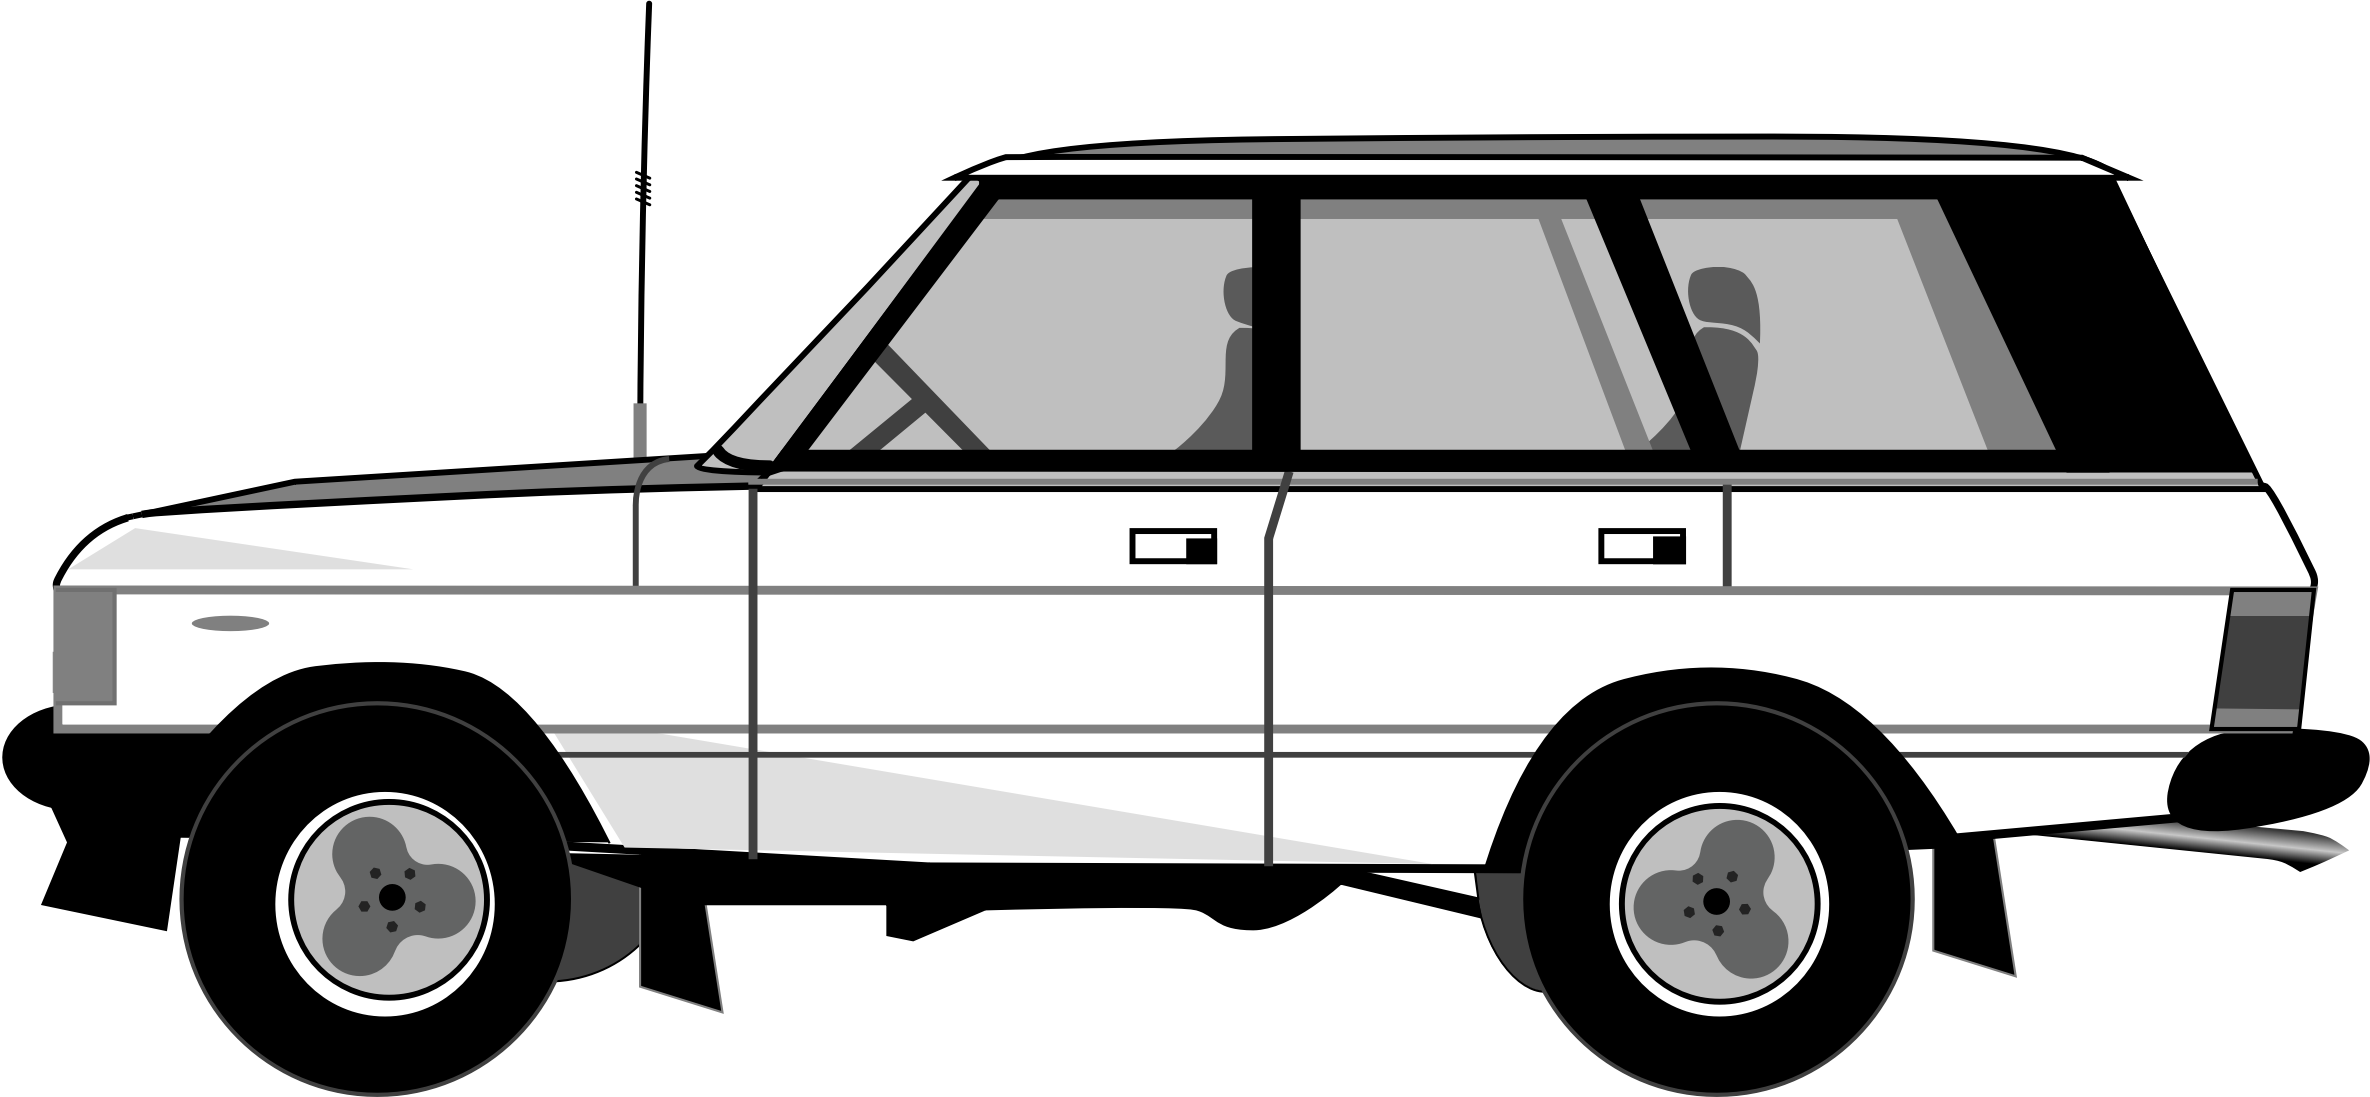 Range rover clipart graphic freeuse Land Rover PNG images free download graphic freeuse